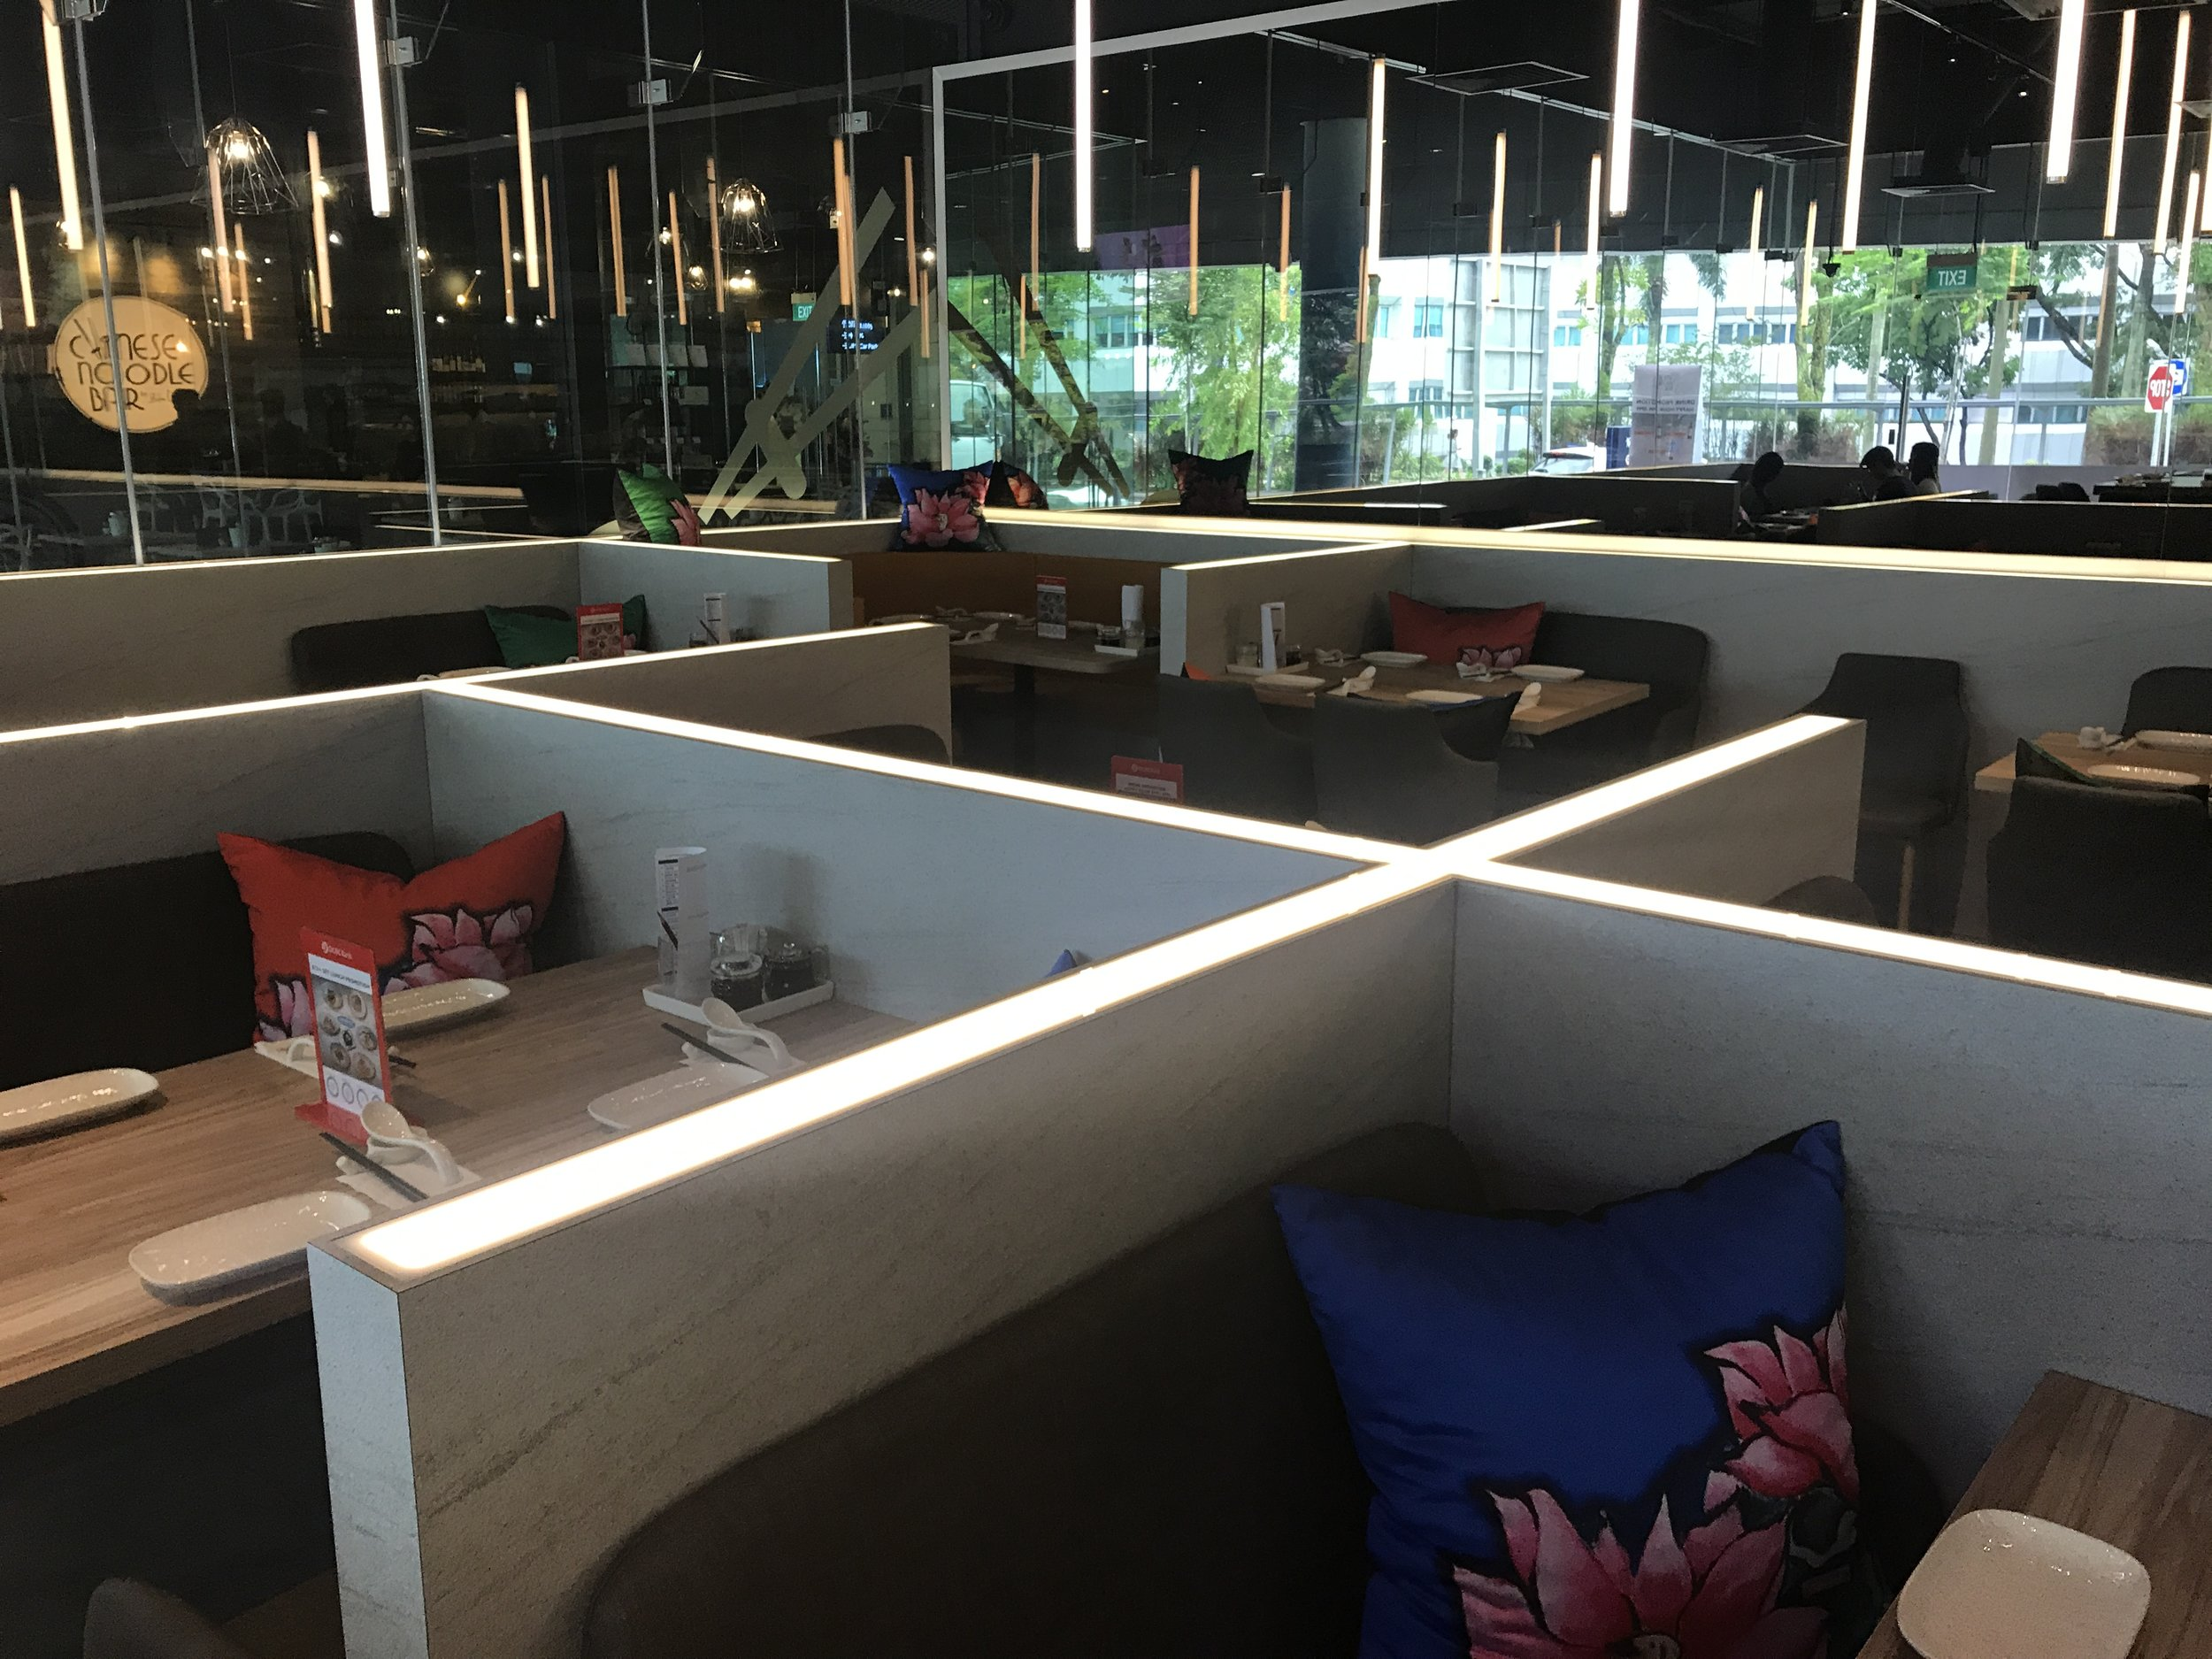 The interior at Chinese Noodle Bar by Blue Lotus, Singapore